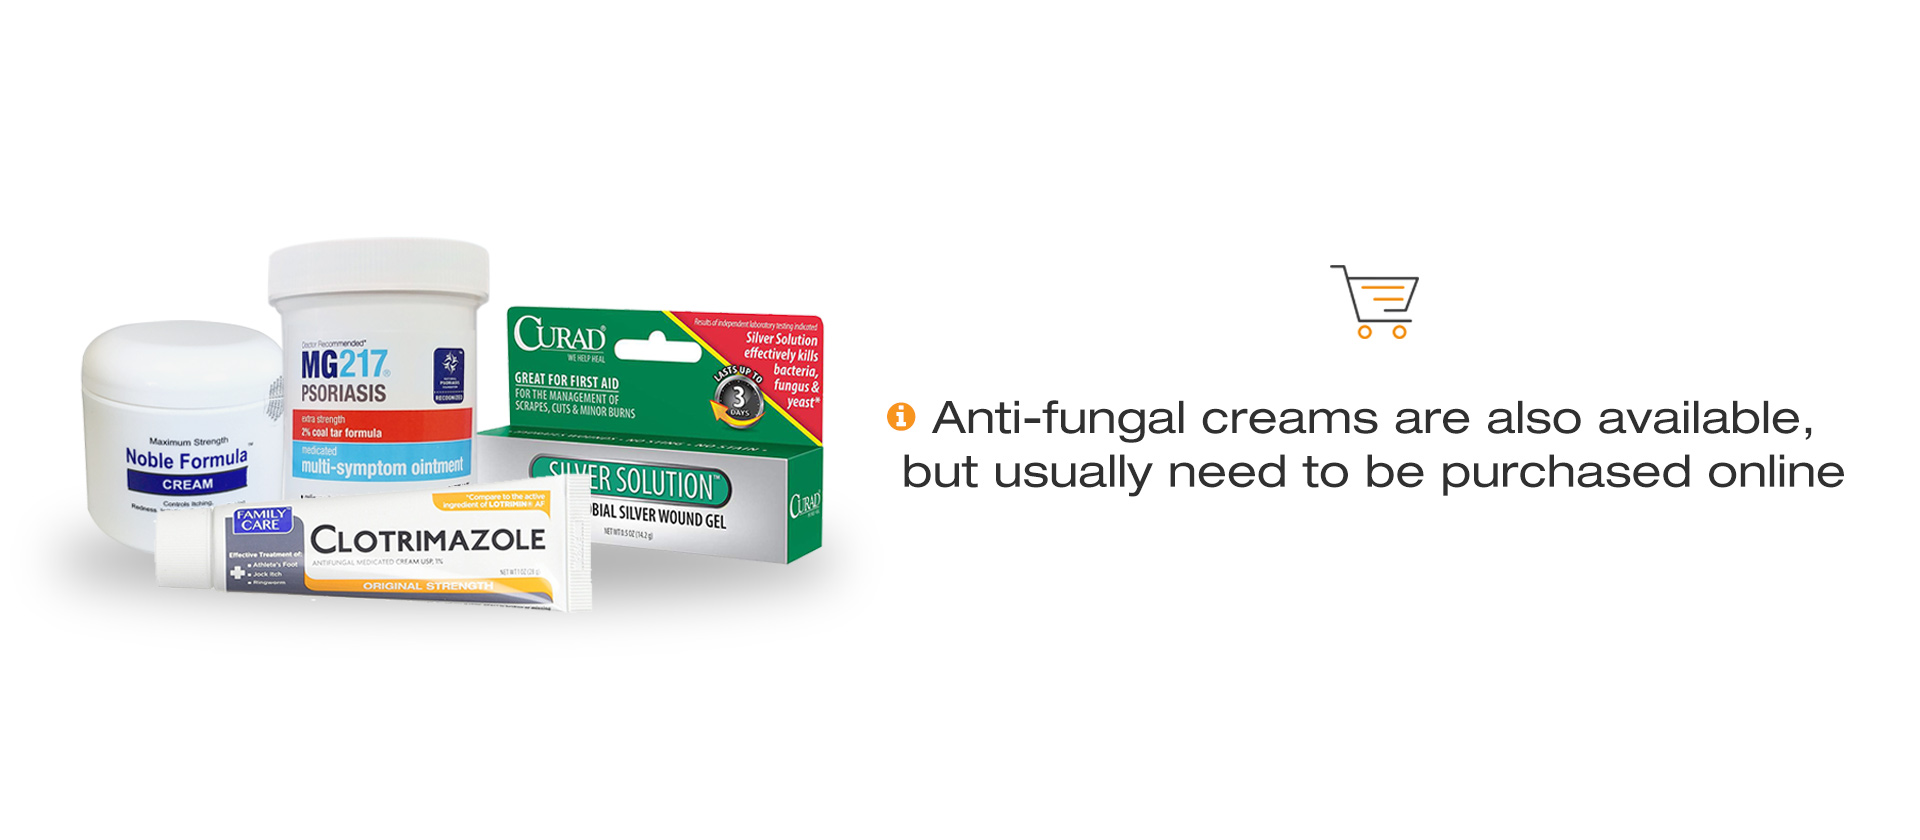 Image of 4 popular anti-fungal creams for the treatment of seborrheic dermatitis on the chest